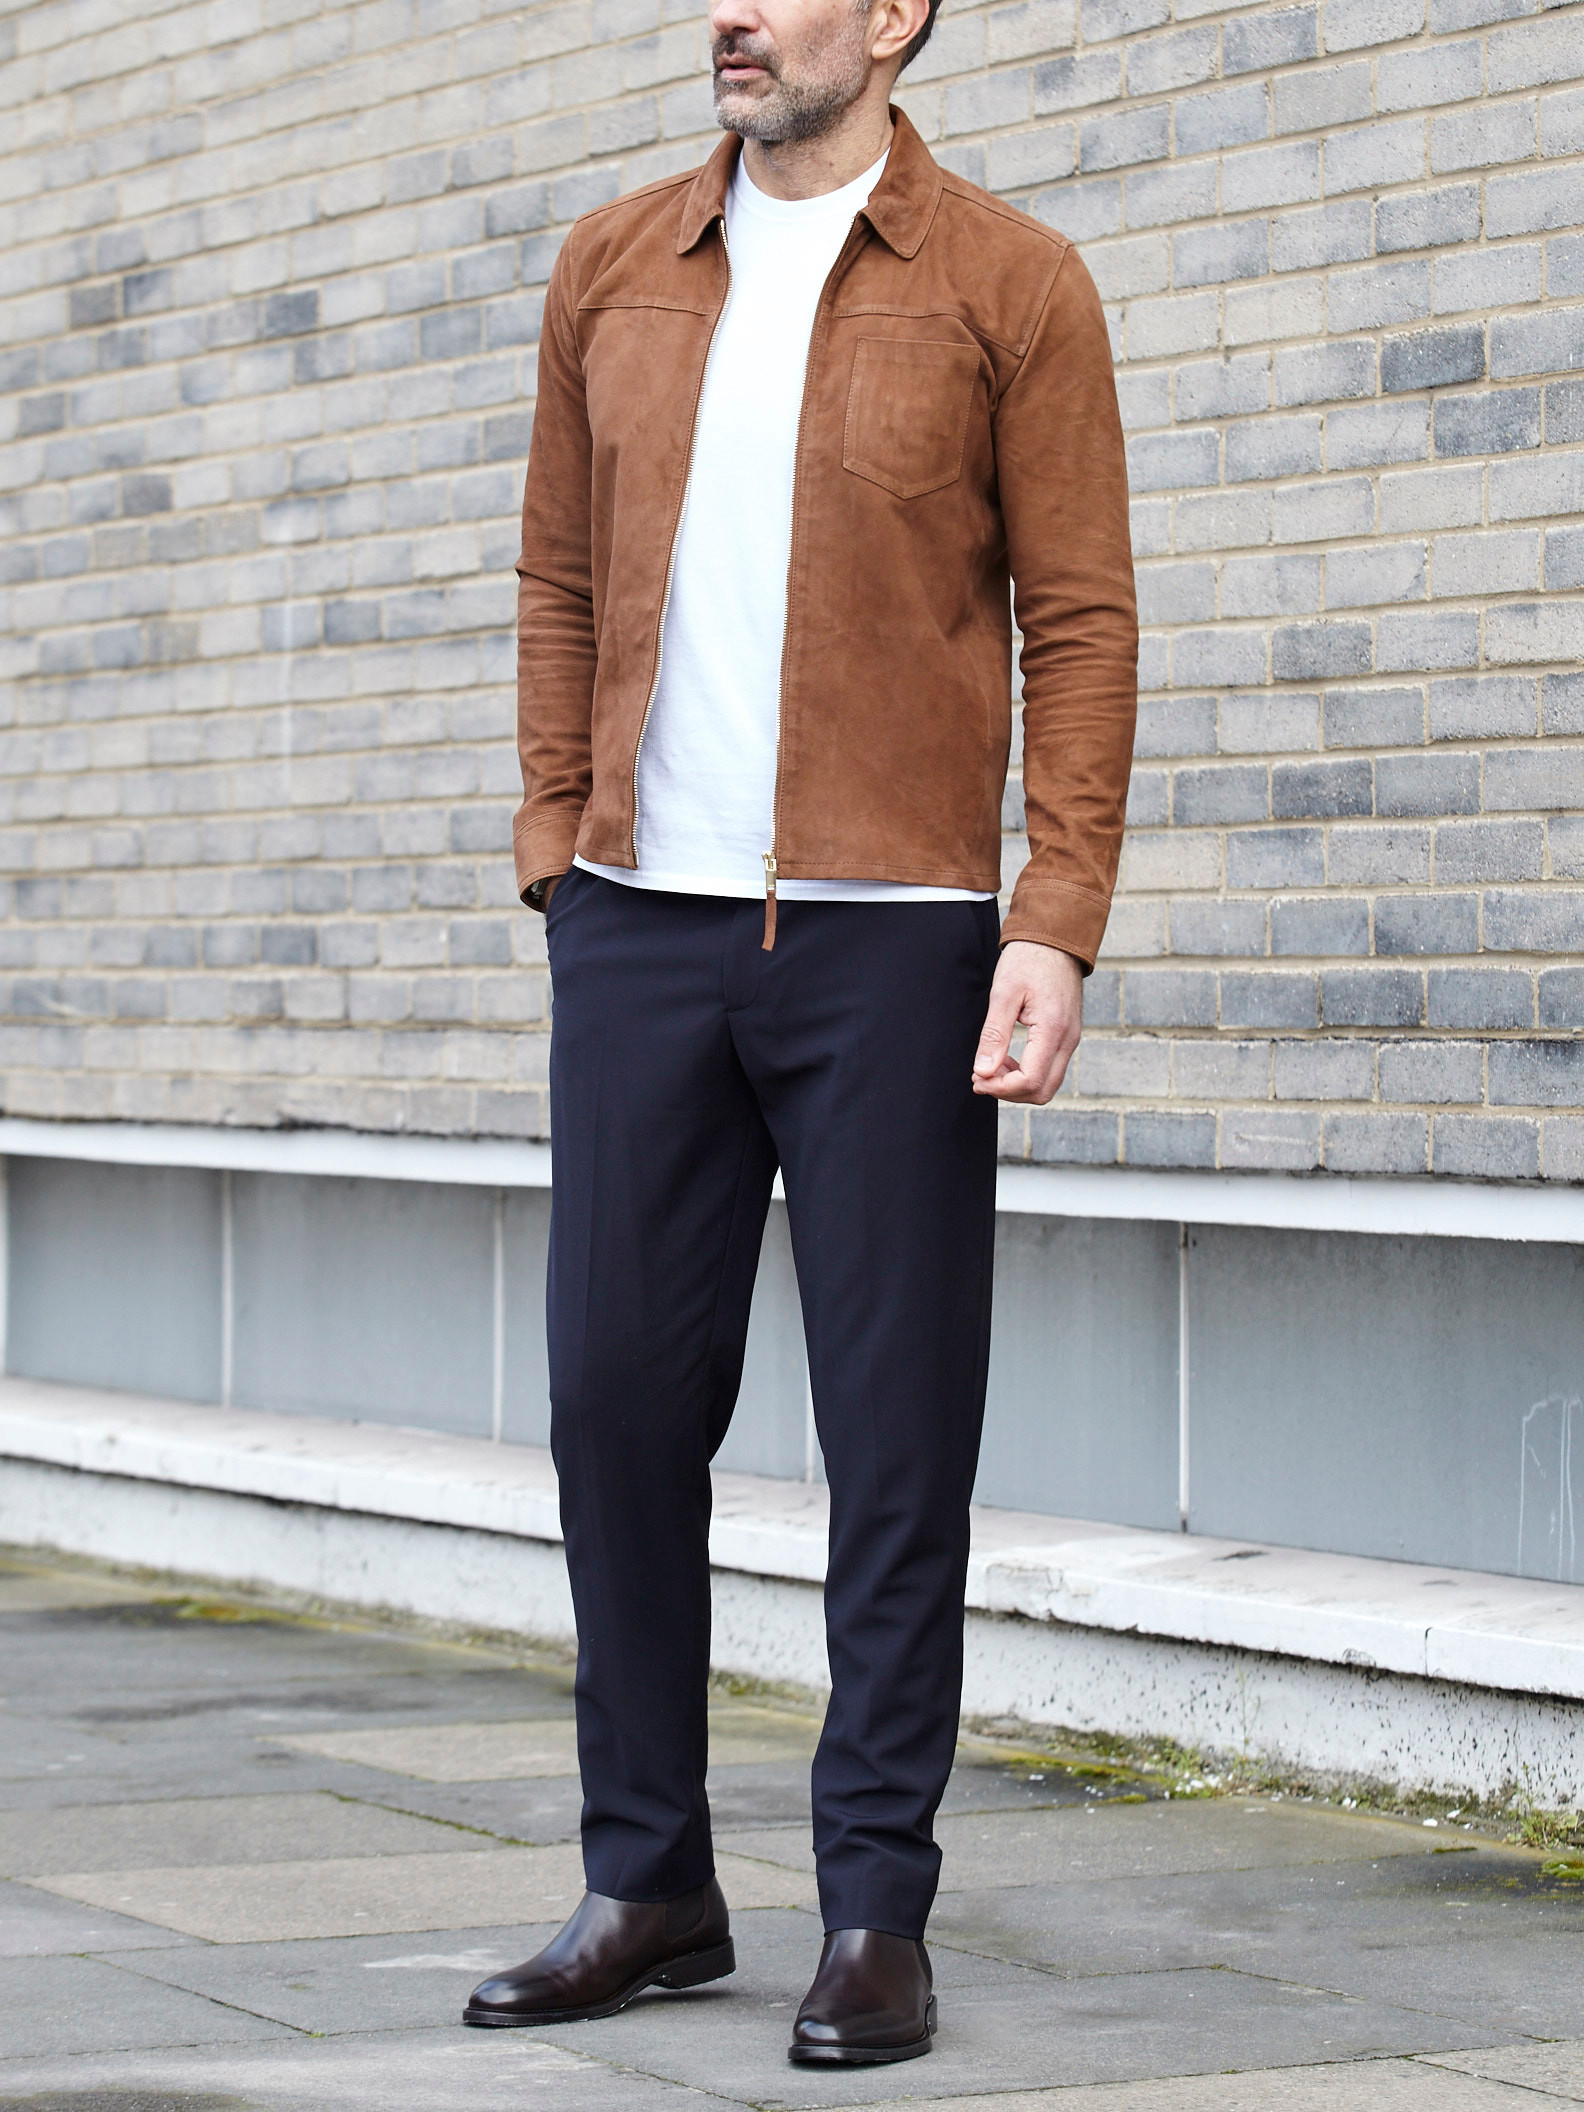 Men's outfit idea for 2021 with neutral utility jacket, white crew neck t-shirt, navy formal trousers, brown chelsea boots. Suitable for spring and autumn.